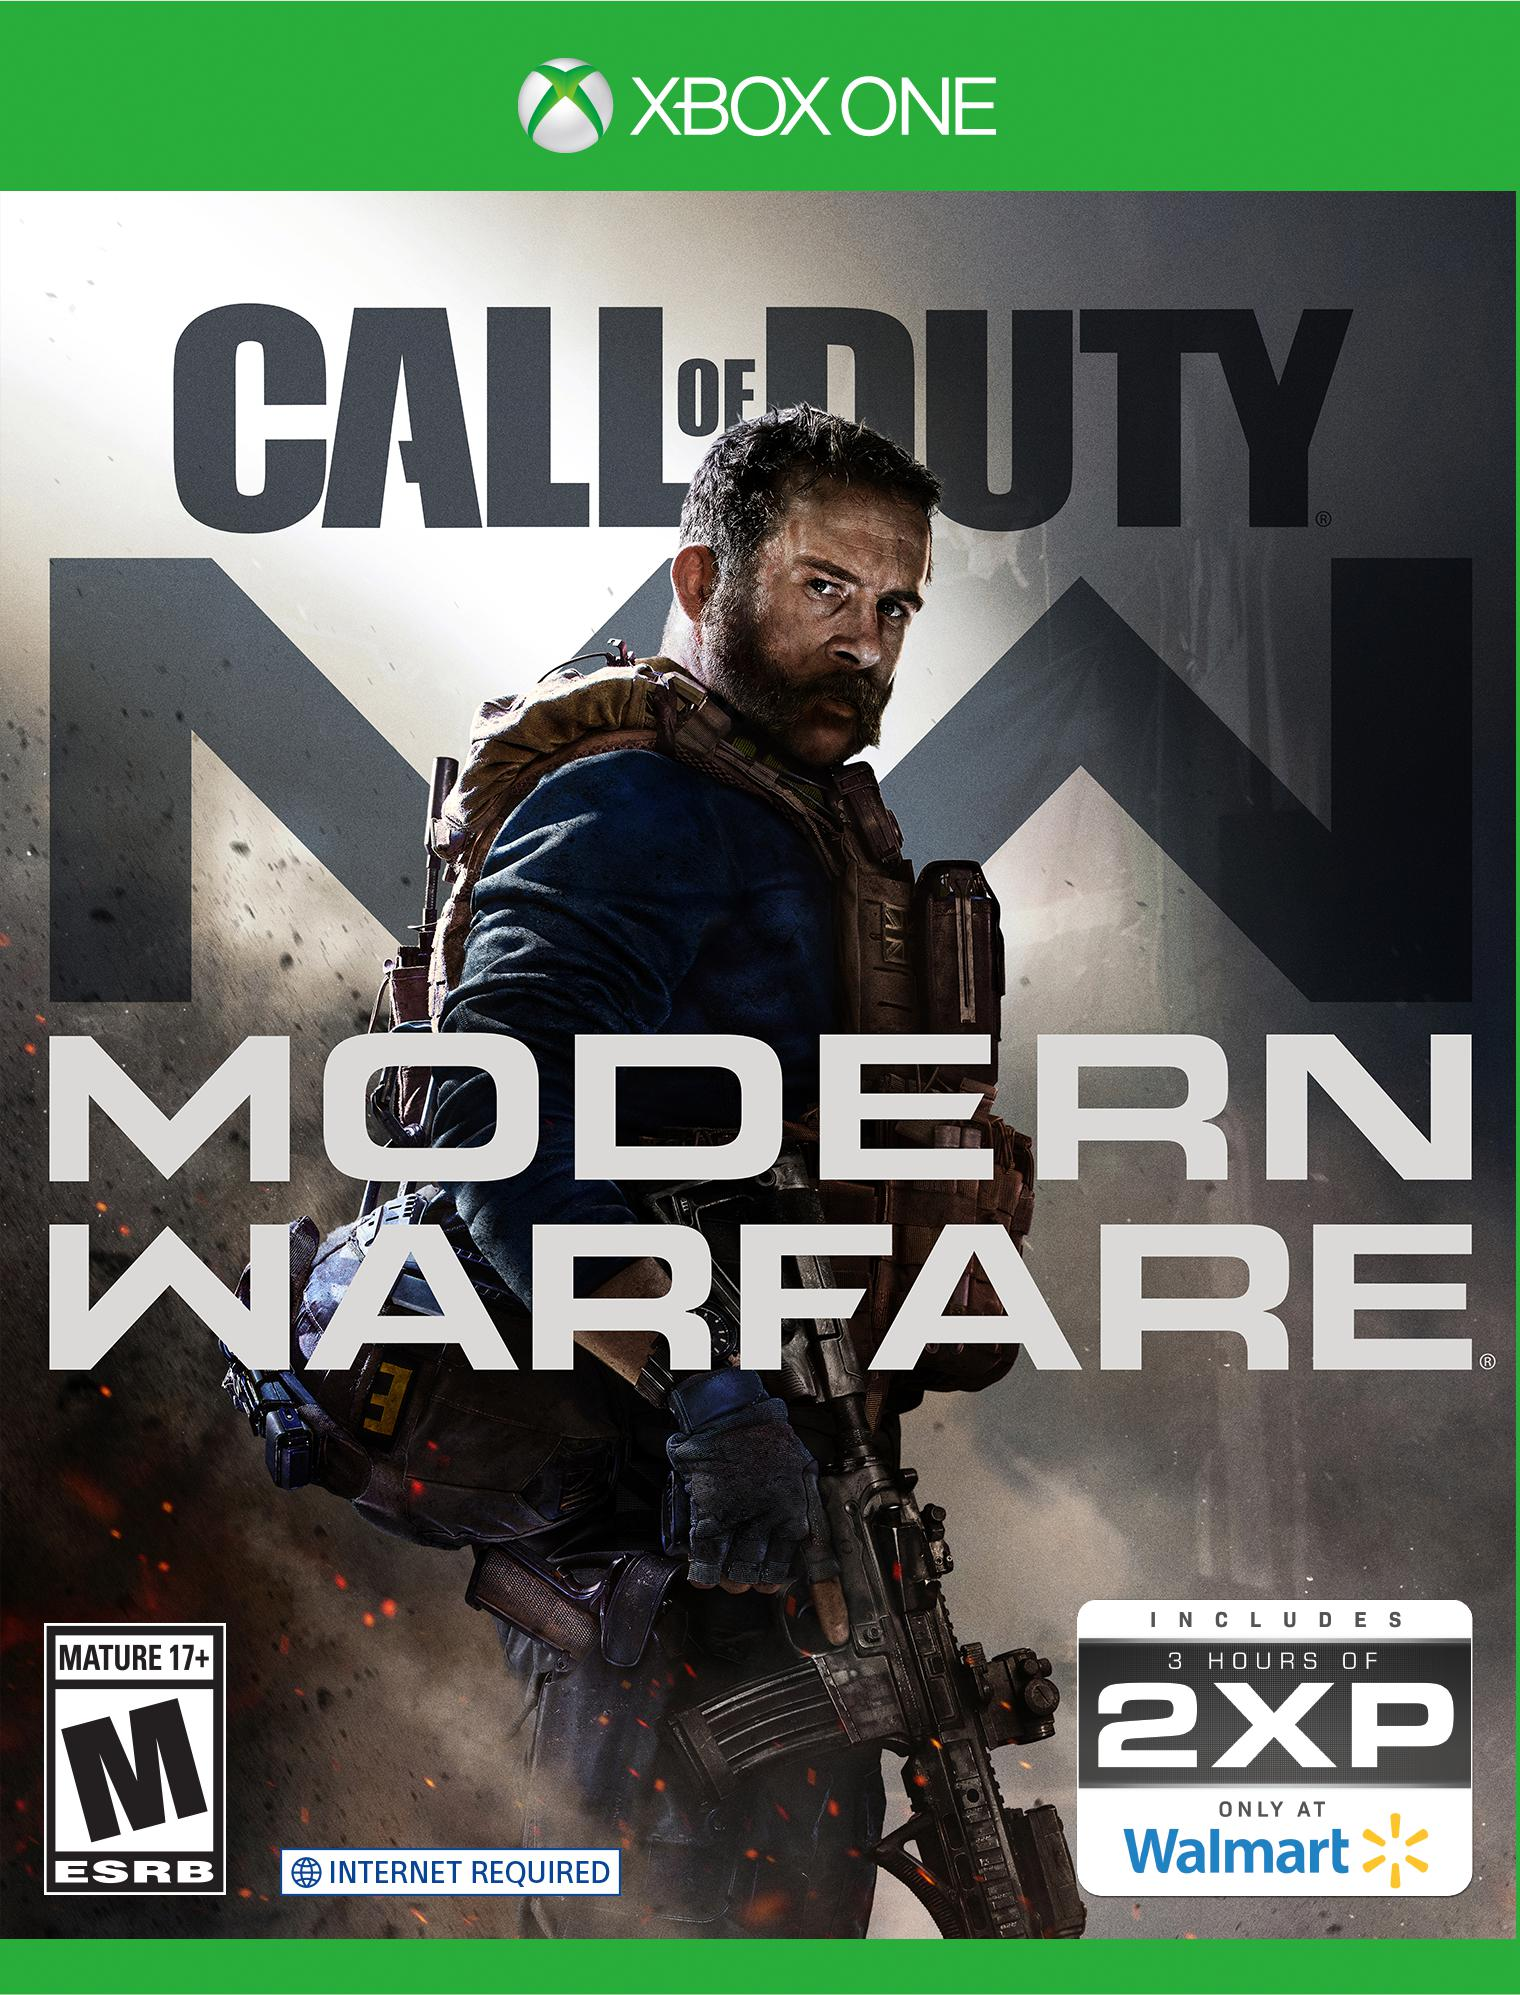 Call Of Duty Modern Warfare Xbox One Get 3 Hours Of 2xp With